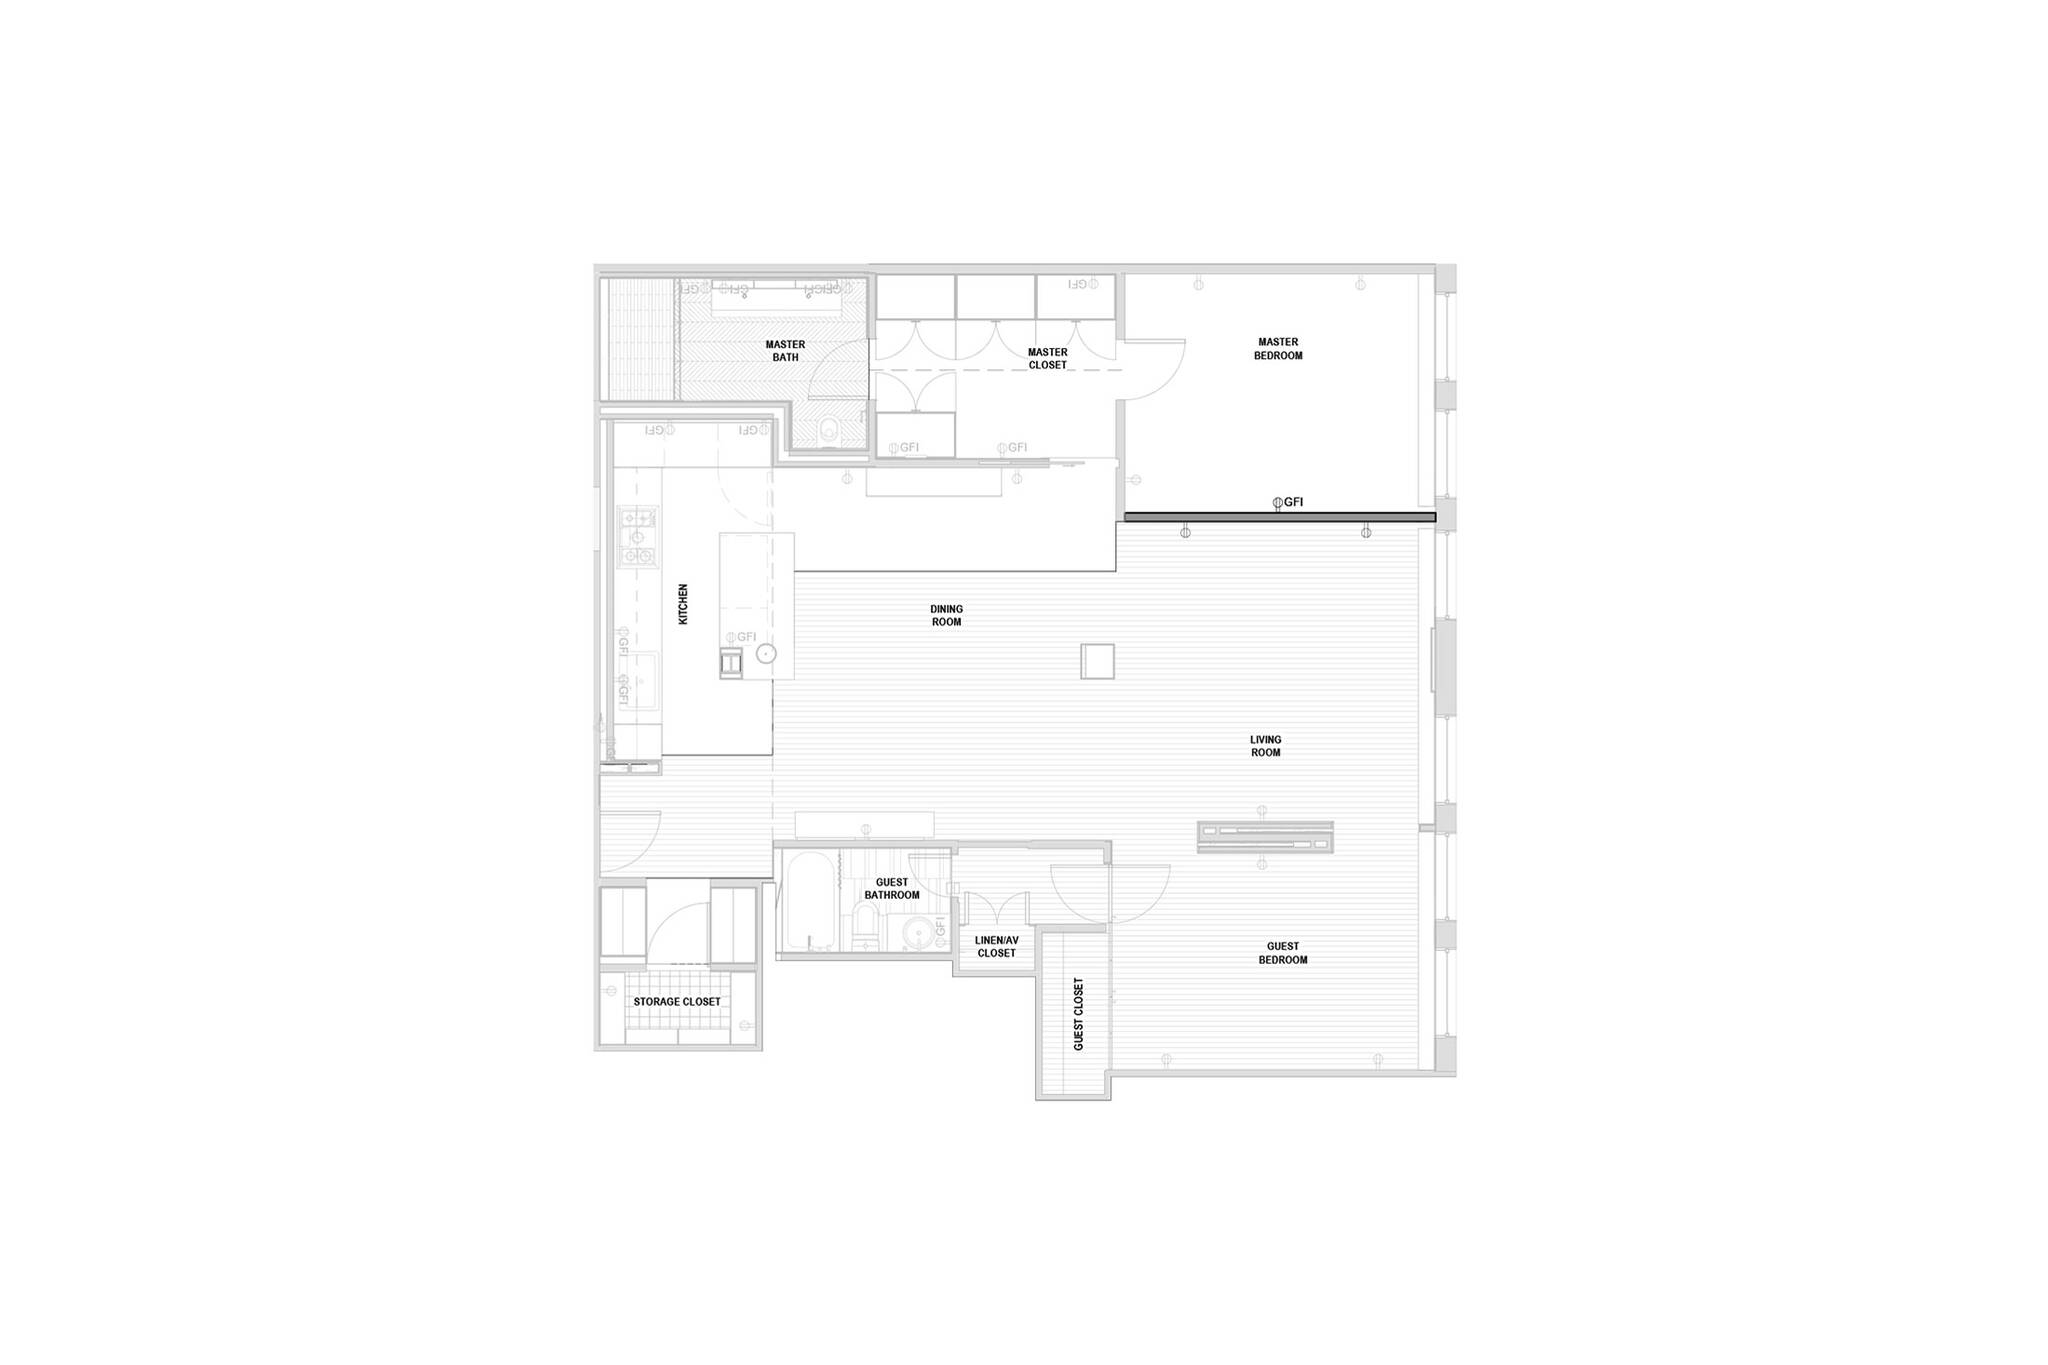 Plan view of the Loft renovation project in Chelsea, New York City designed by the architecture studio Danny Forster & Architecture